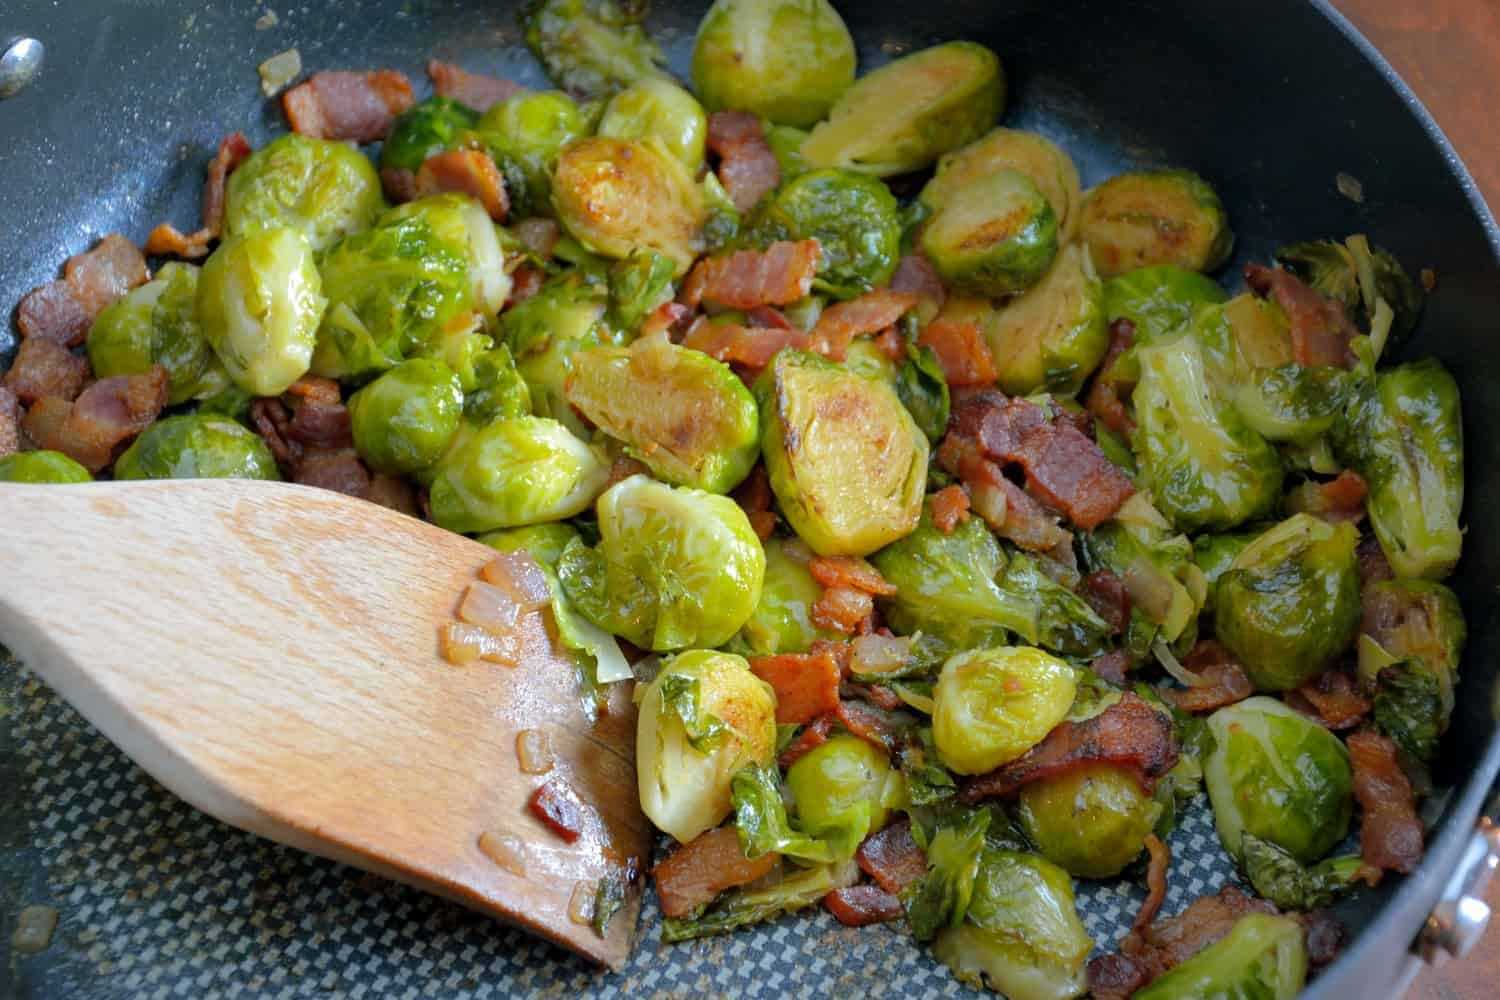 Brussels Sprouts with Bacon Recipe - Think you don't like brussels sprouts? This Brussel sprouts recipe will change your mind!! BEST brussels sprouts ever! Great dinner side dish! www.savoryexperiments.com